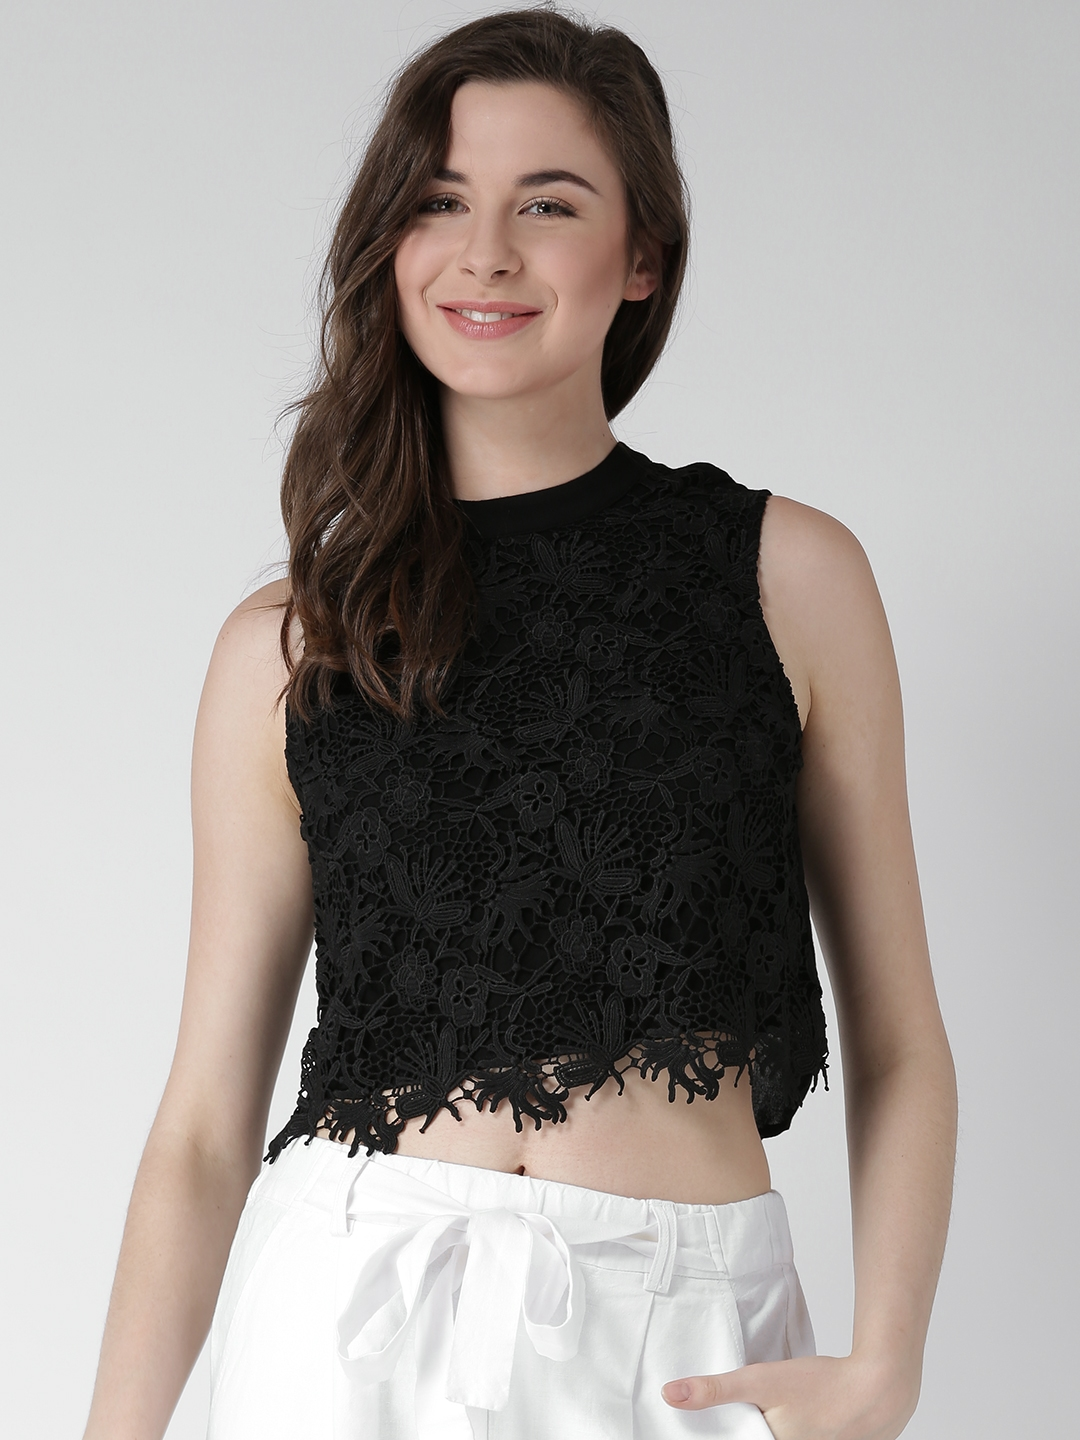 ca1a50563b36d Buy FOREVER 21 Women Black Lace Crop Top - Tops for Women 1536331 ...